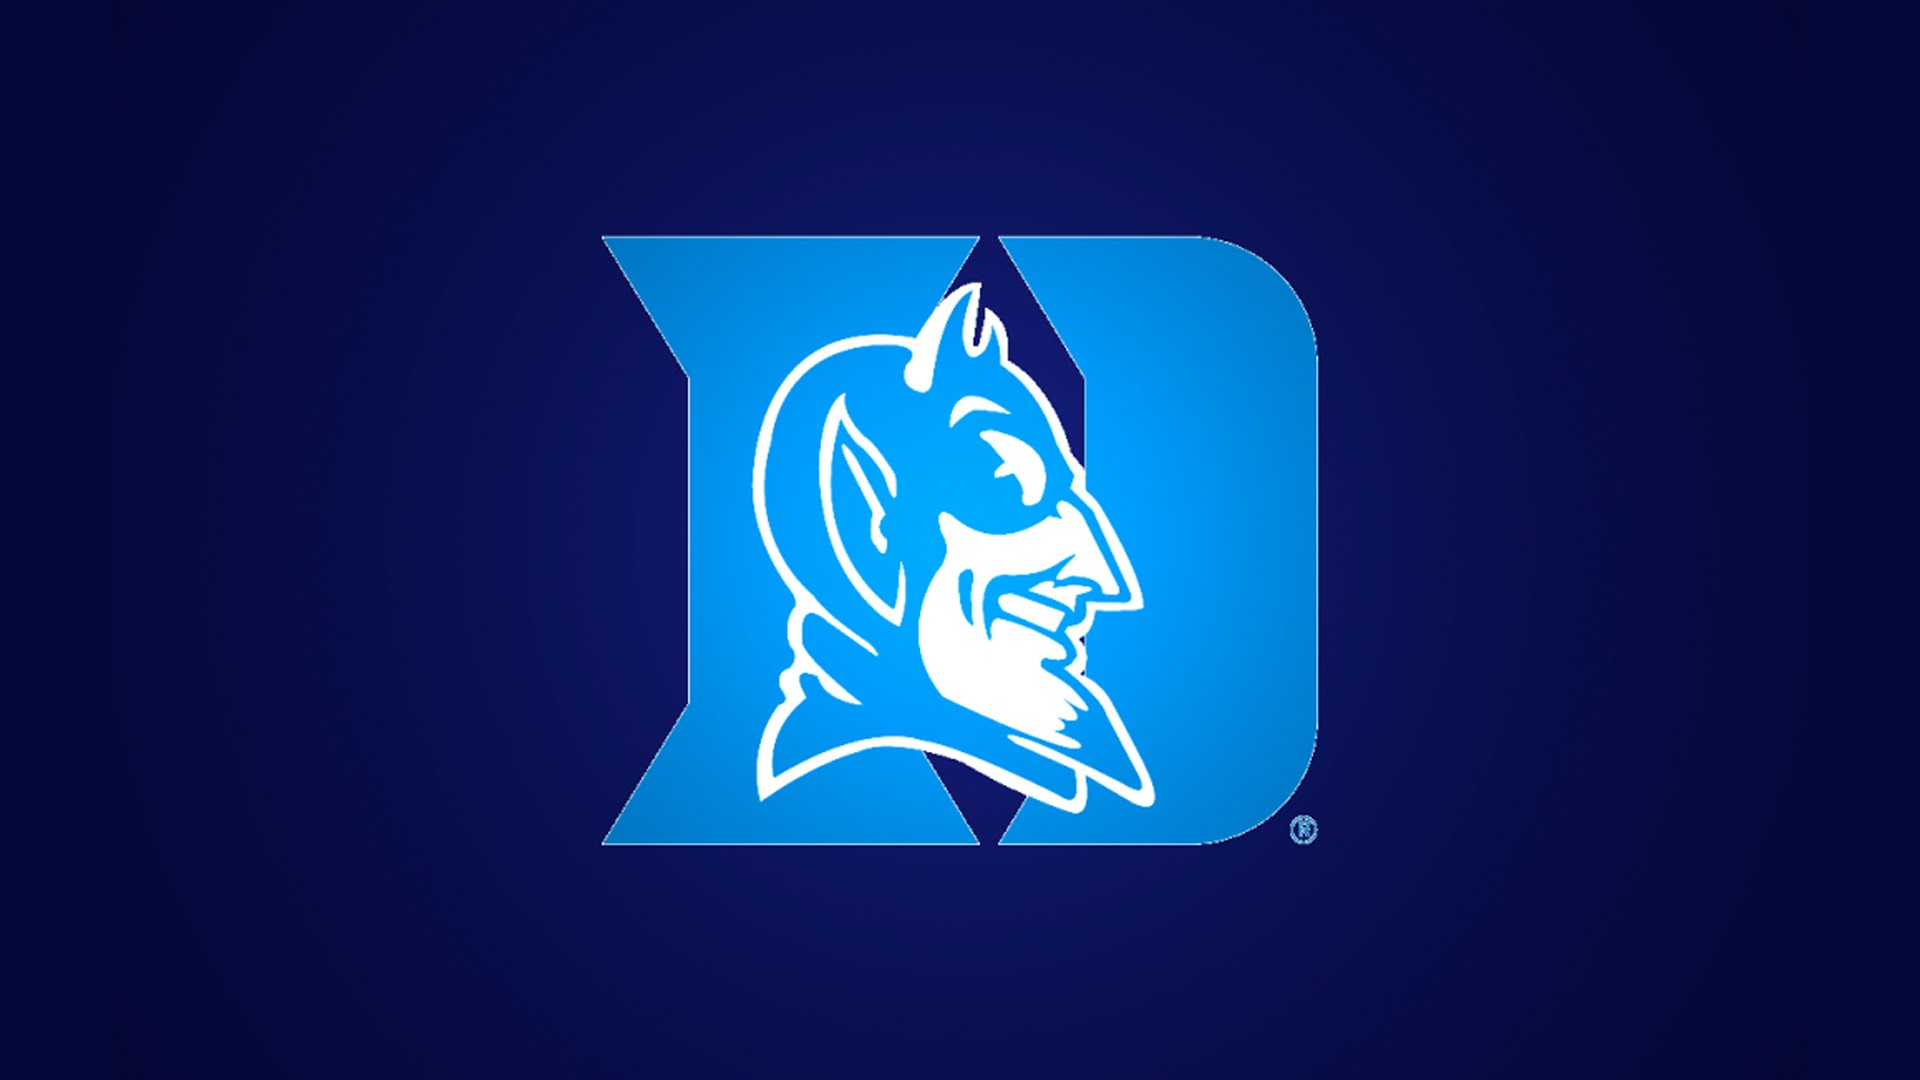 Duke Blue Devils Wallpapers HD | PixelsTalk Net